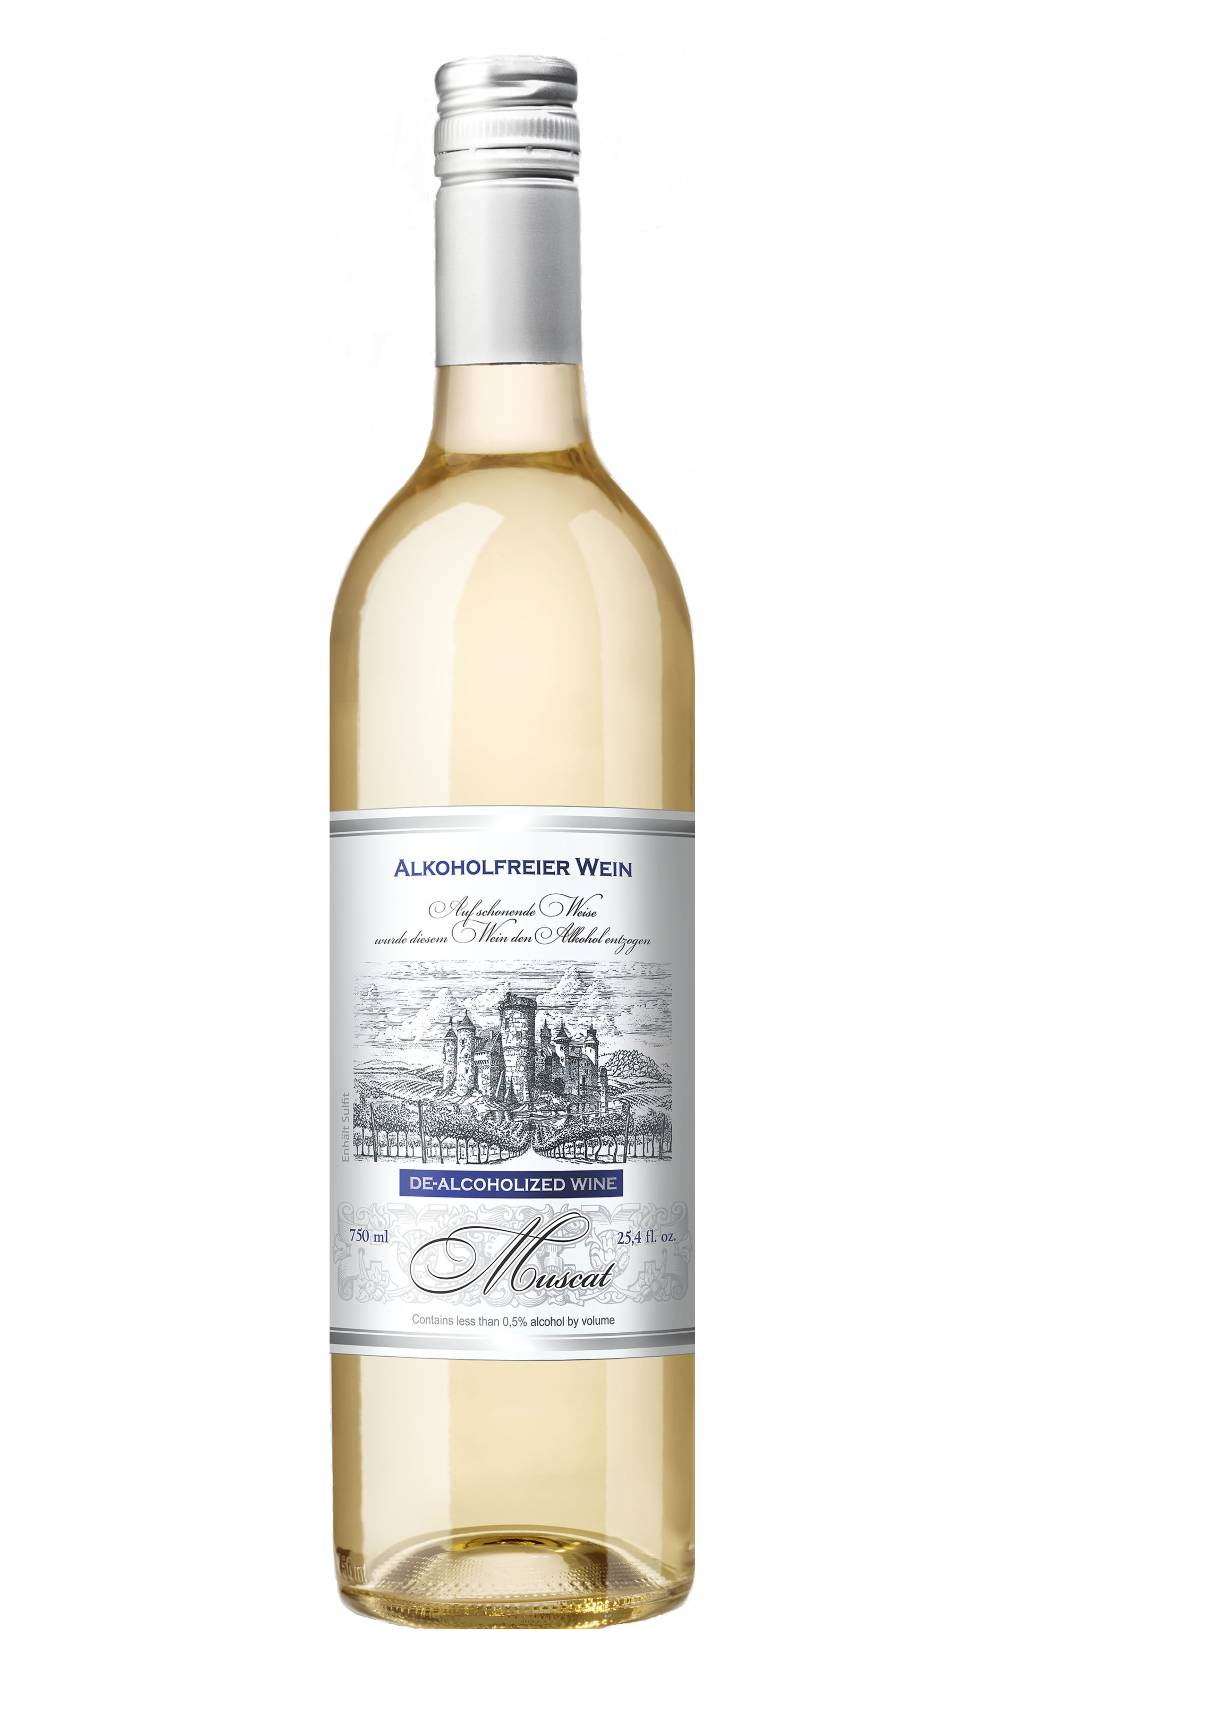 Alcohol-free Muscat White